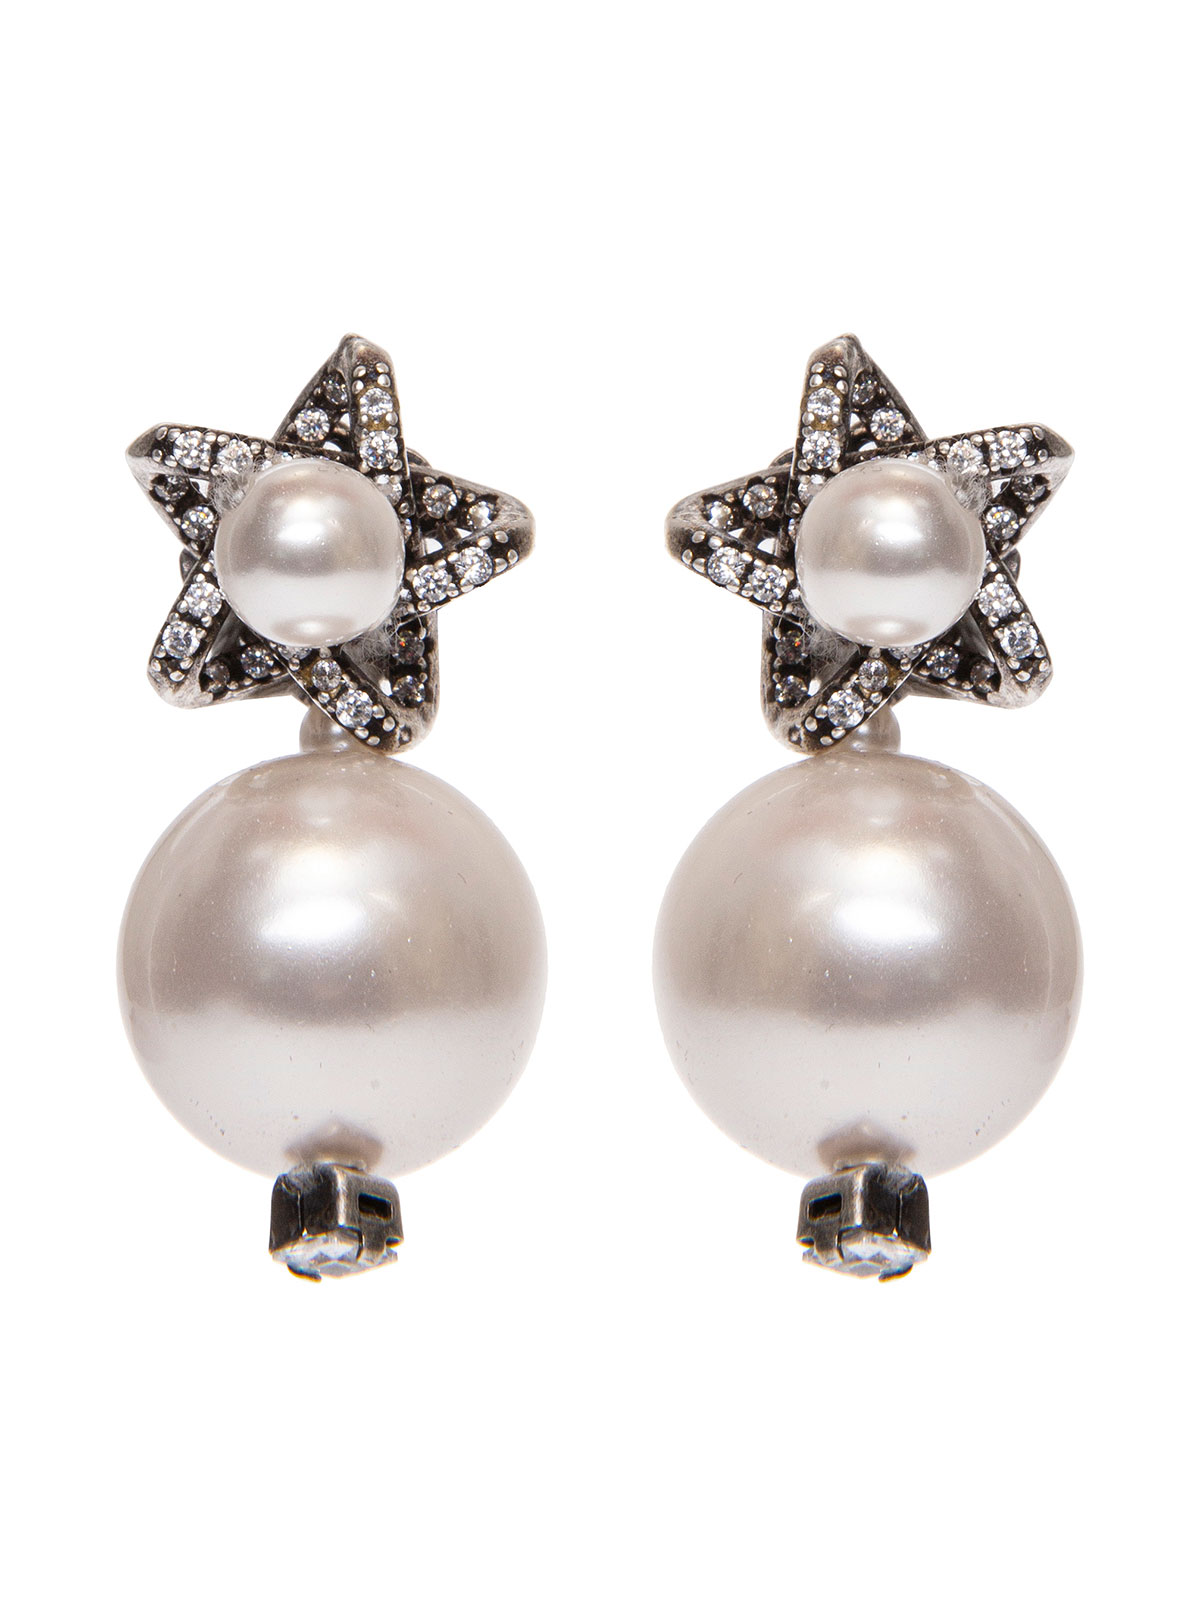 Star earrings with pendent pearl